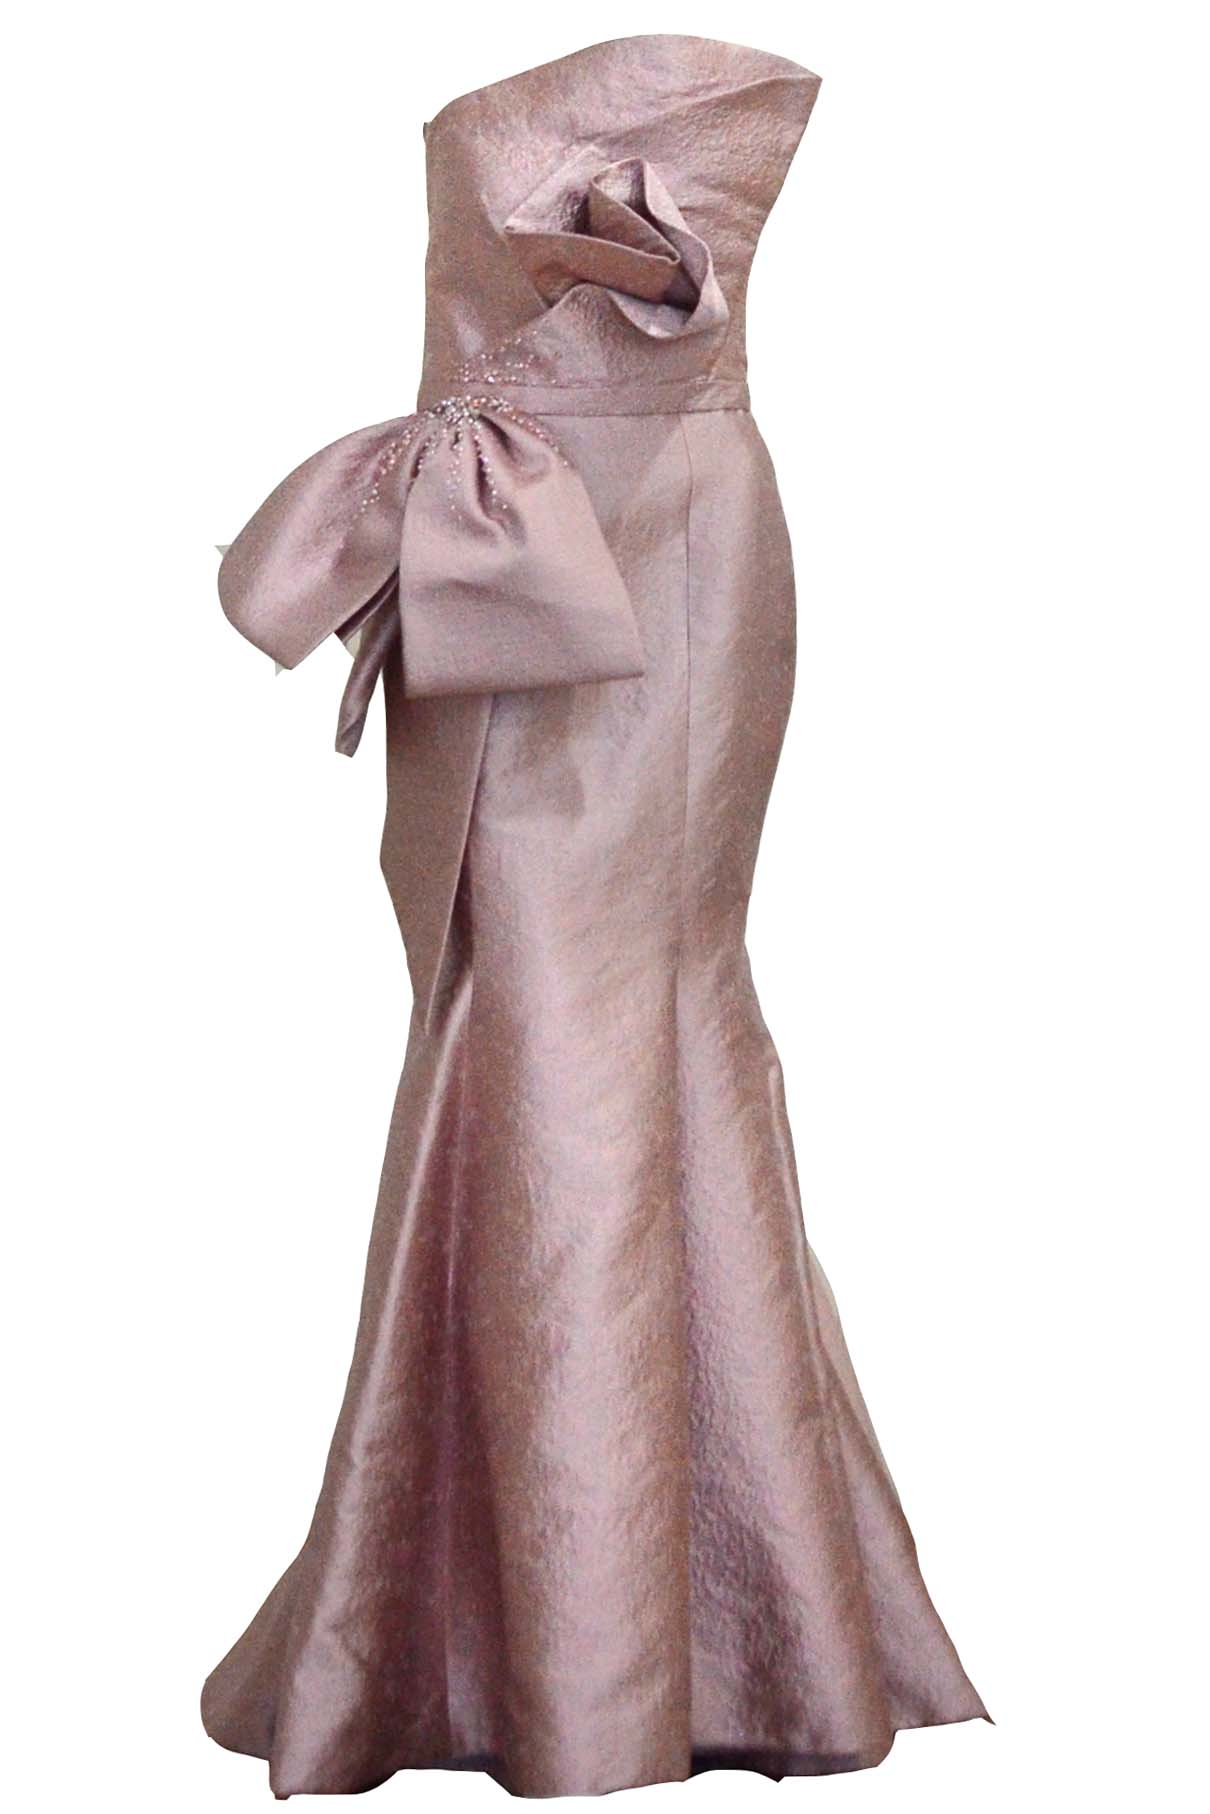 Buy: Anrini Polim - Pink Strapless Mermaid Gown